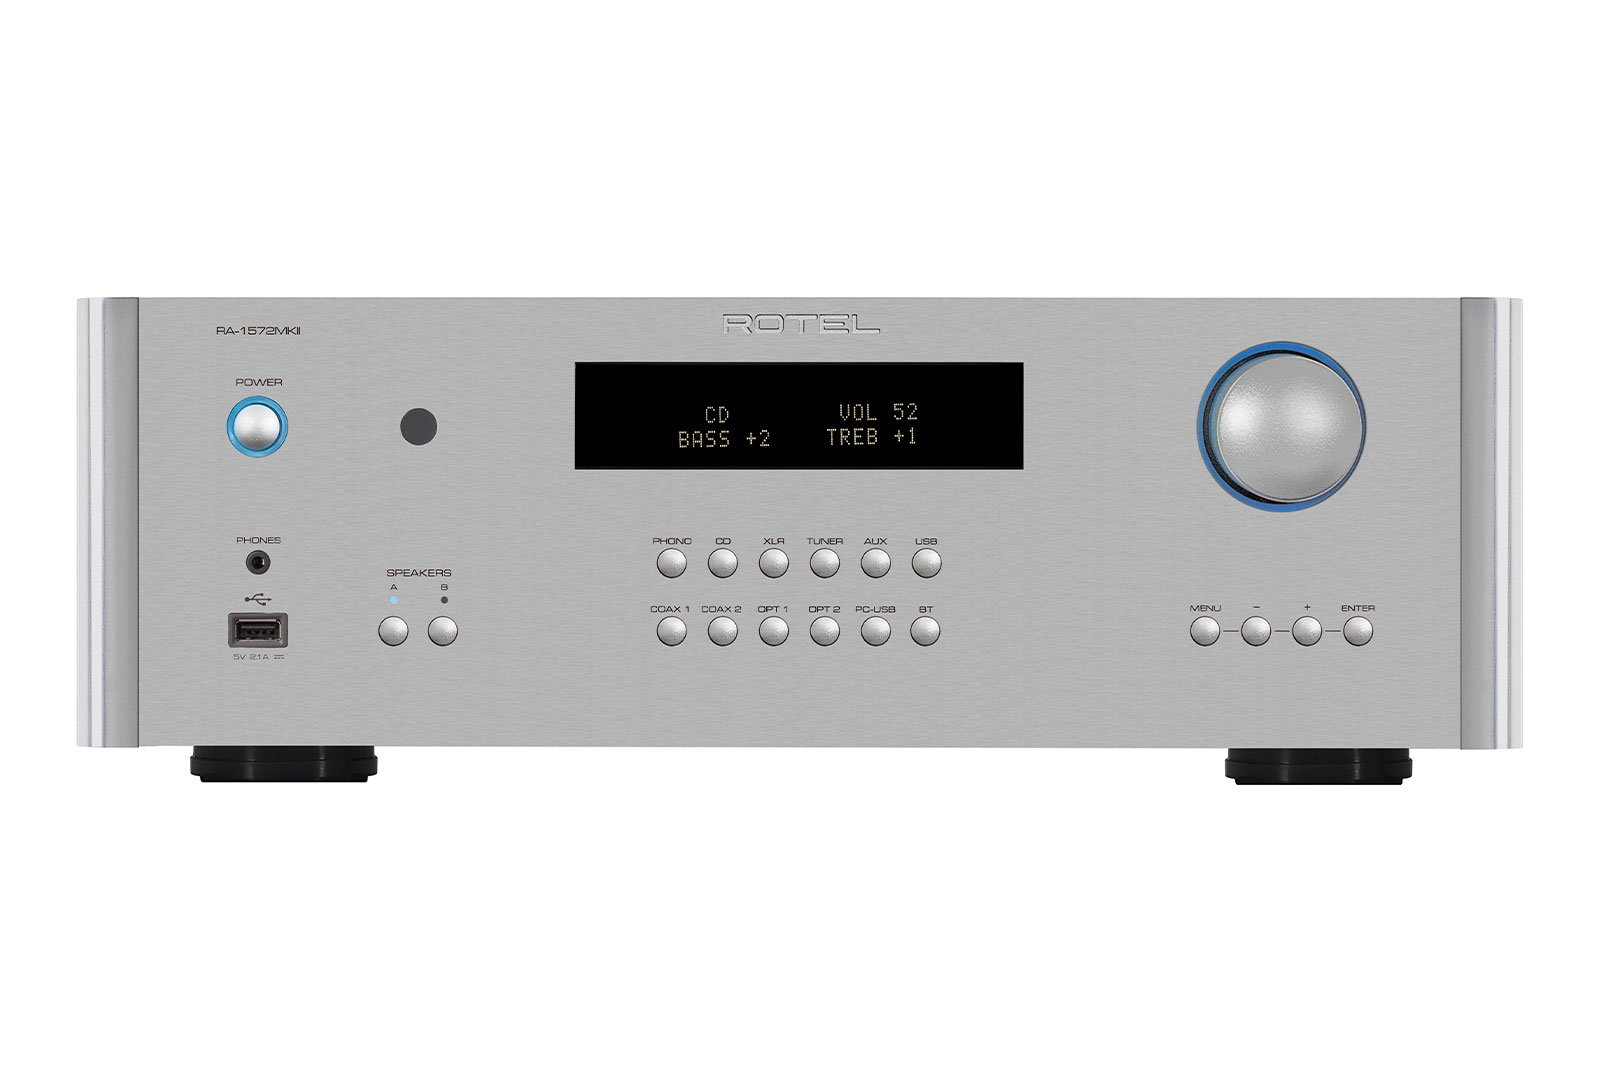 Rotel unveils upgraded amplifiers in its 14 and 15 series